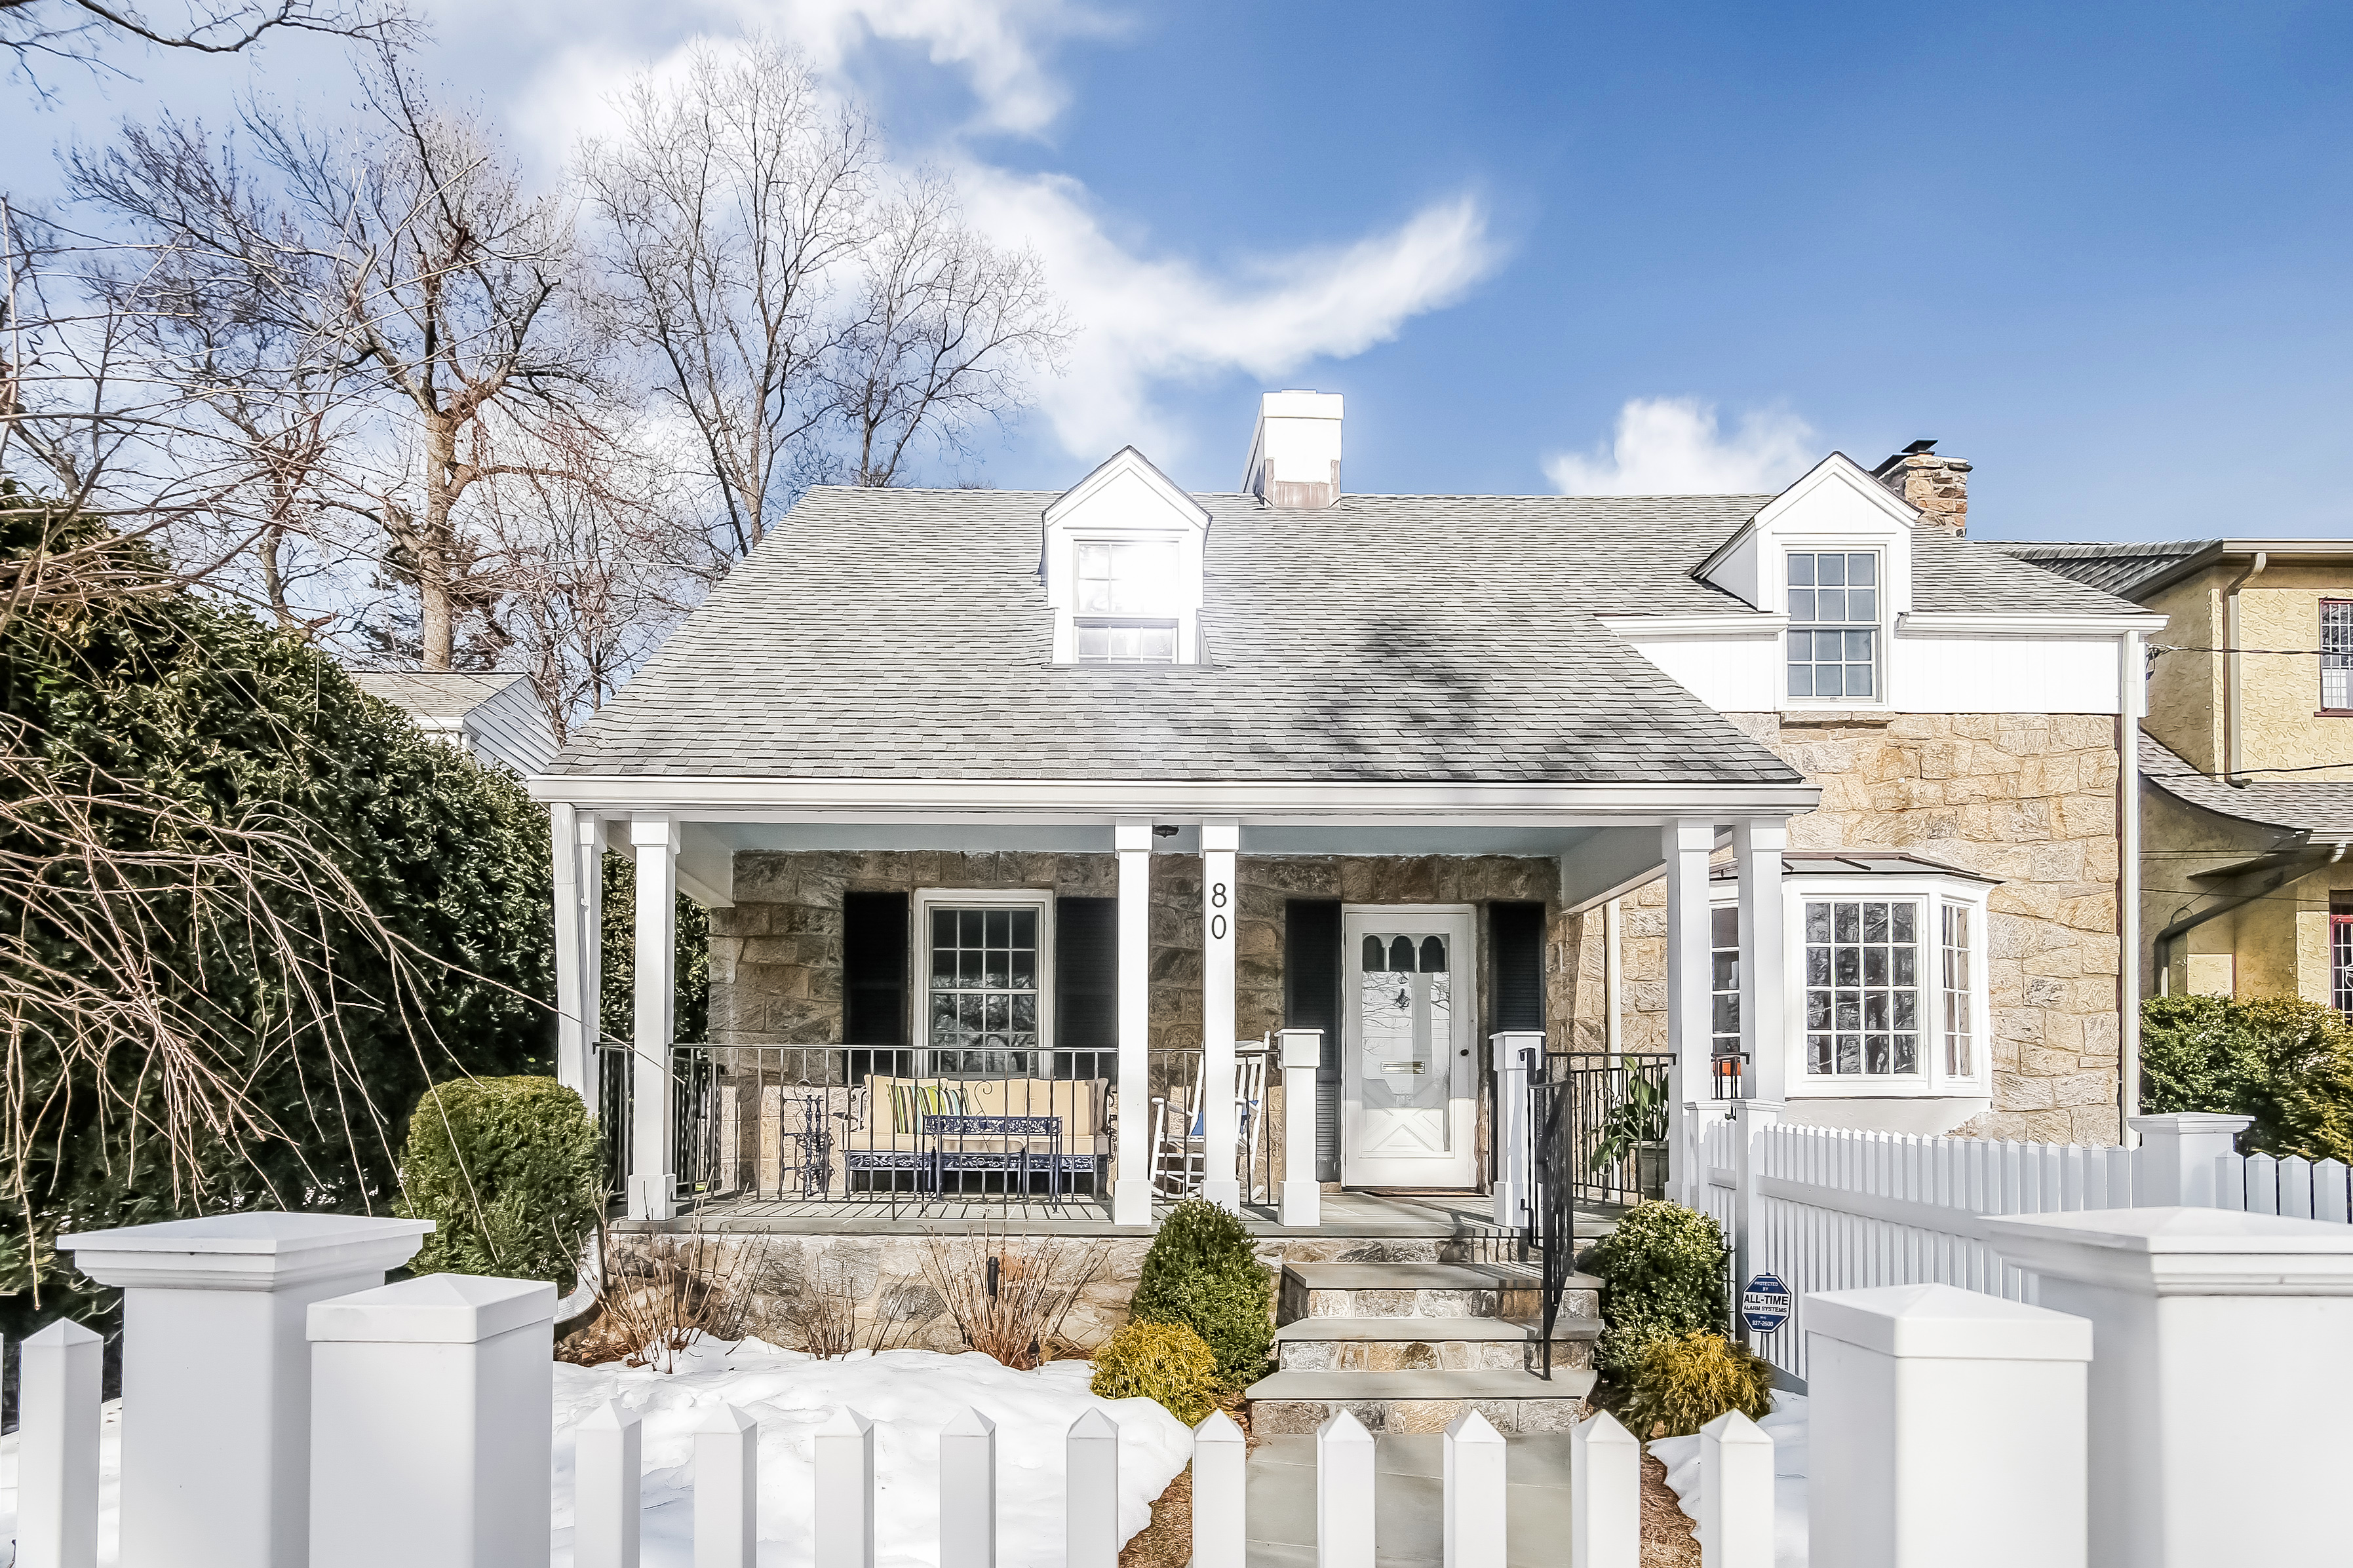 Single Family Home for Sale at Picture Perfect Colonial 80 Mountain Avenue New Rochelle, New York 10804 United States